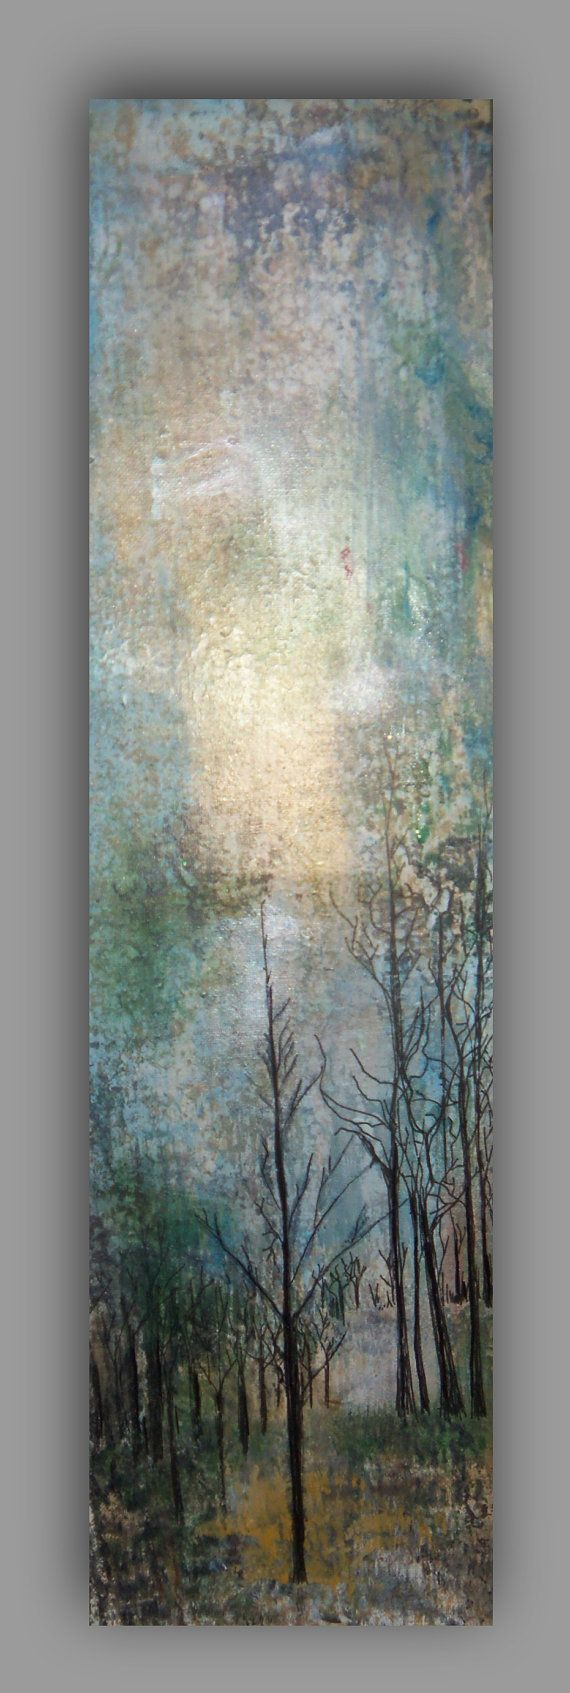 Original Treescape Two Mixed Media My Presence Walk by sherischart, $71.95  Two Painting Illustrations  Walk with Me & My Presence Forest Series I , II http://www.etsy.com/shop/sherischart fine art paintings